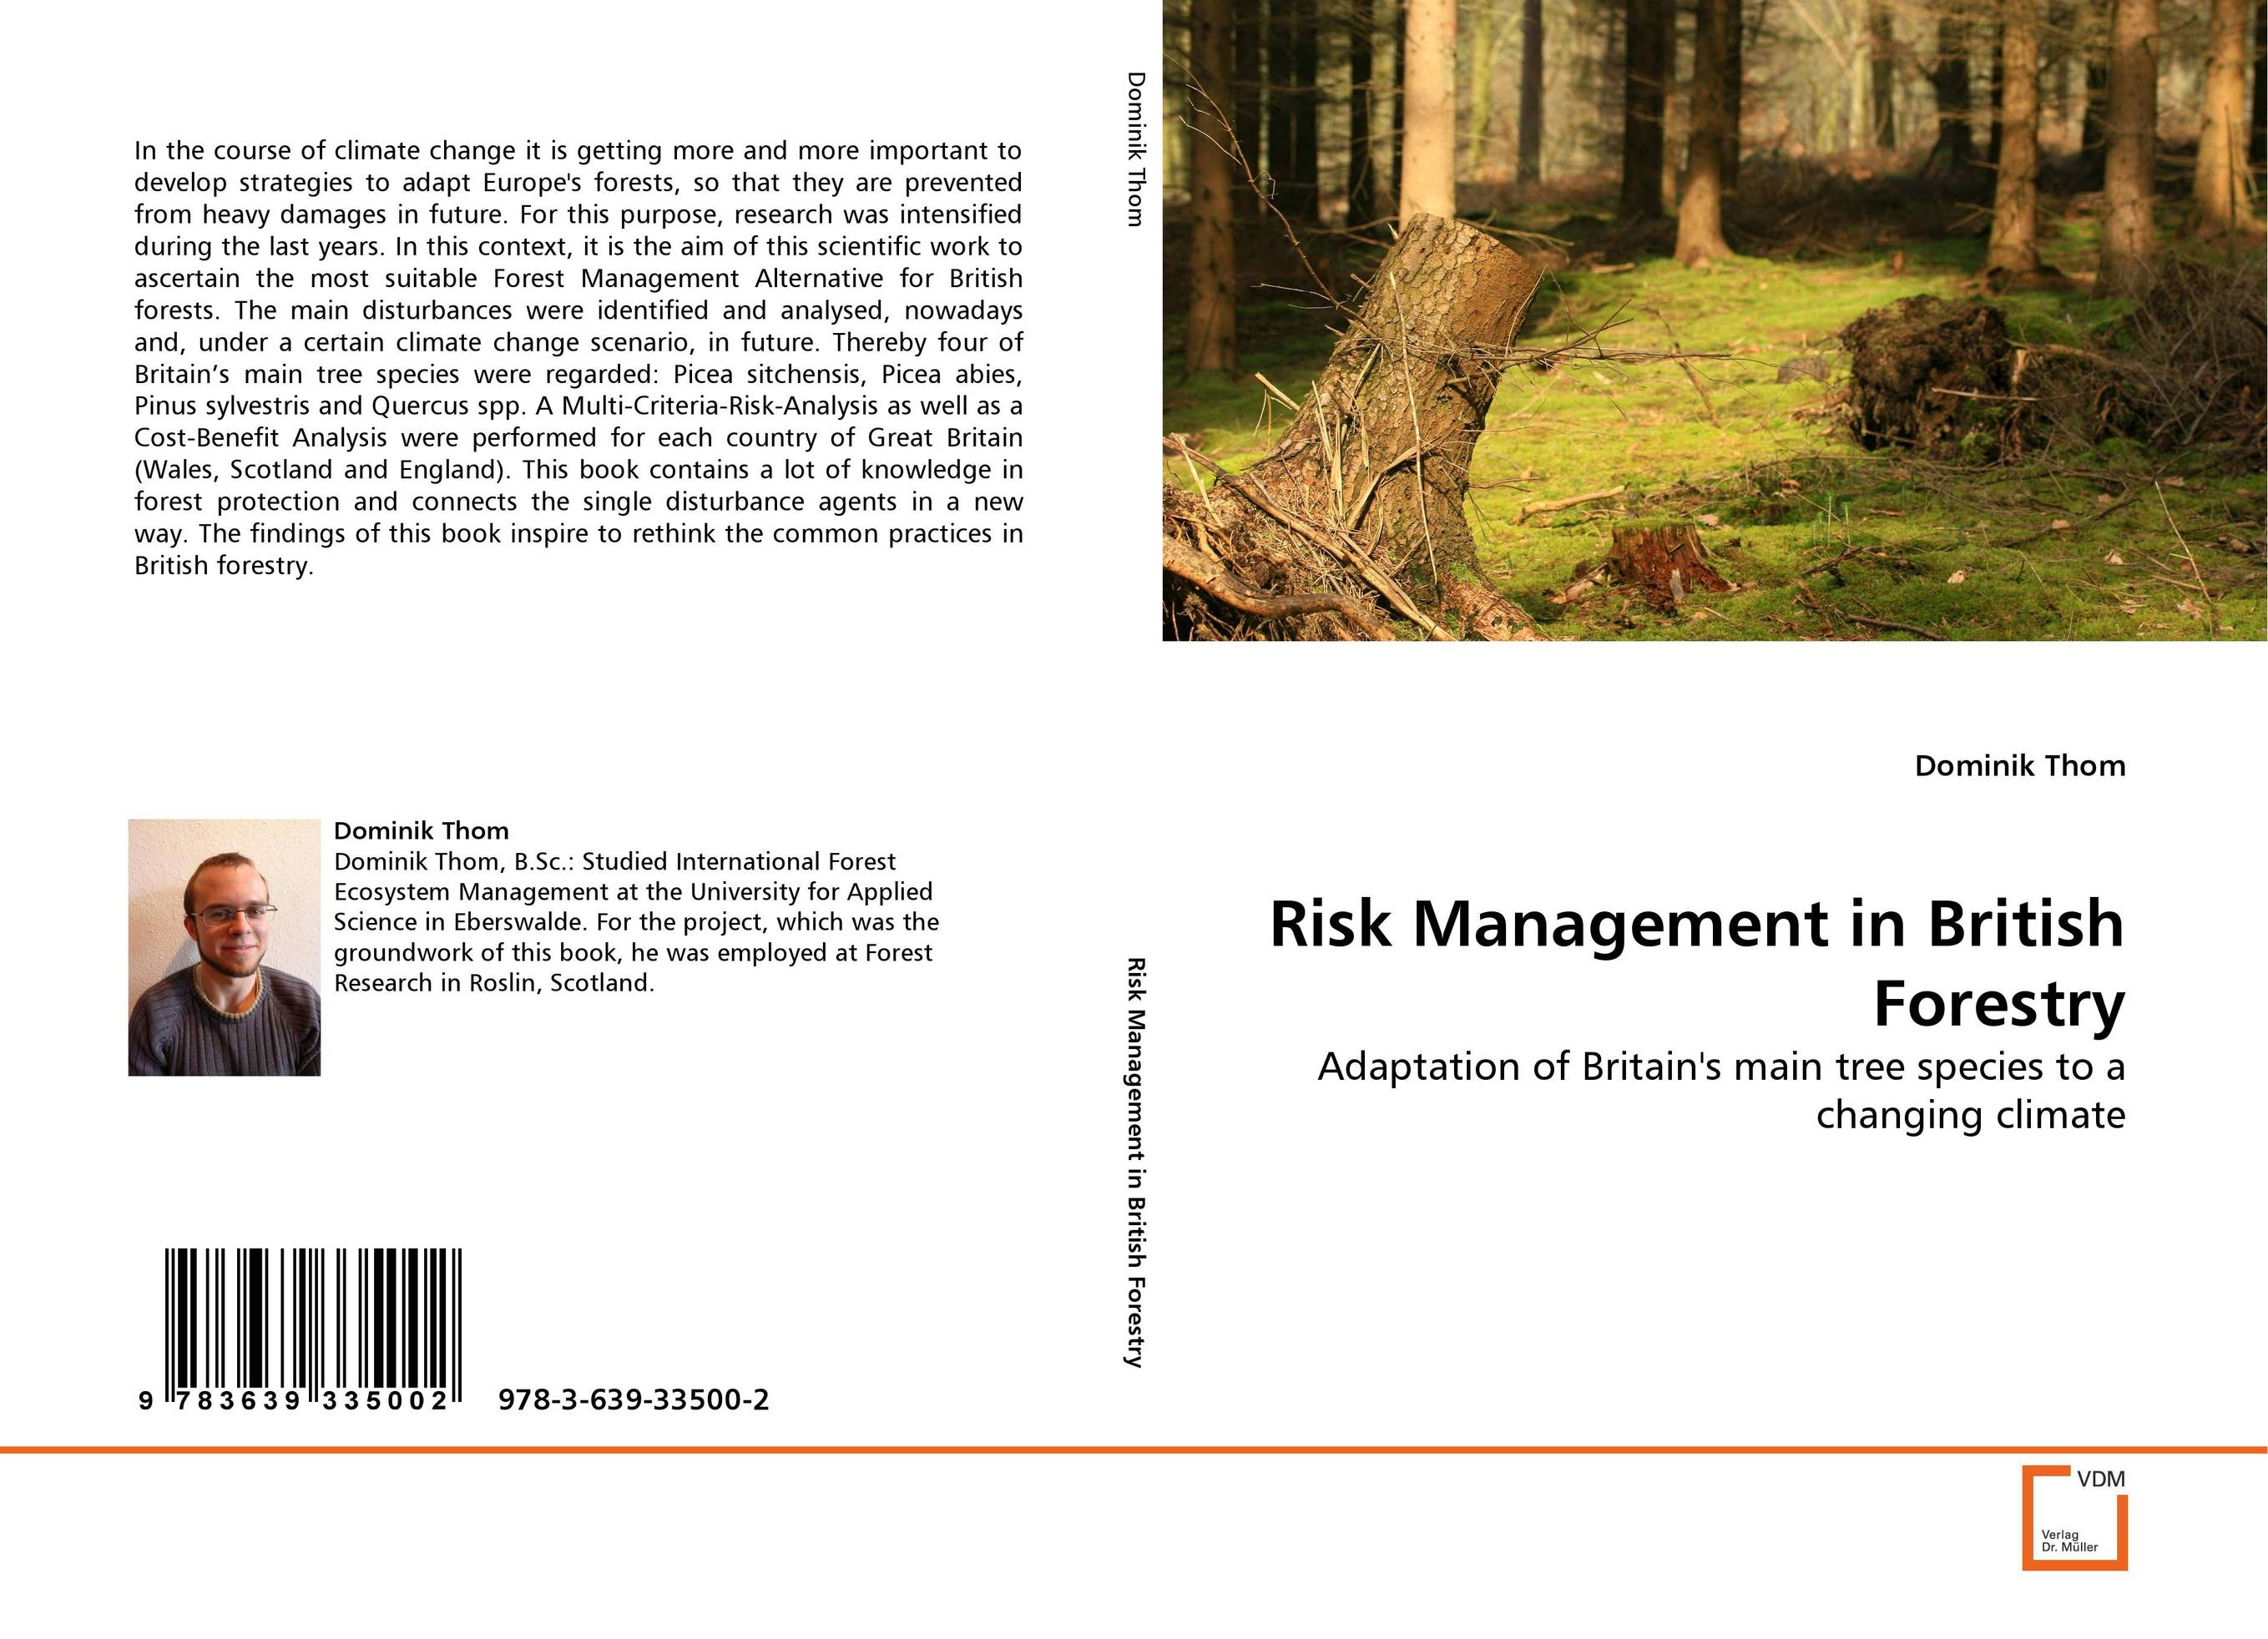 Risk Management in British Forestry john fraser enterprise risk management today s leading research and best practices for tomorrow s executives